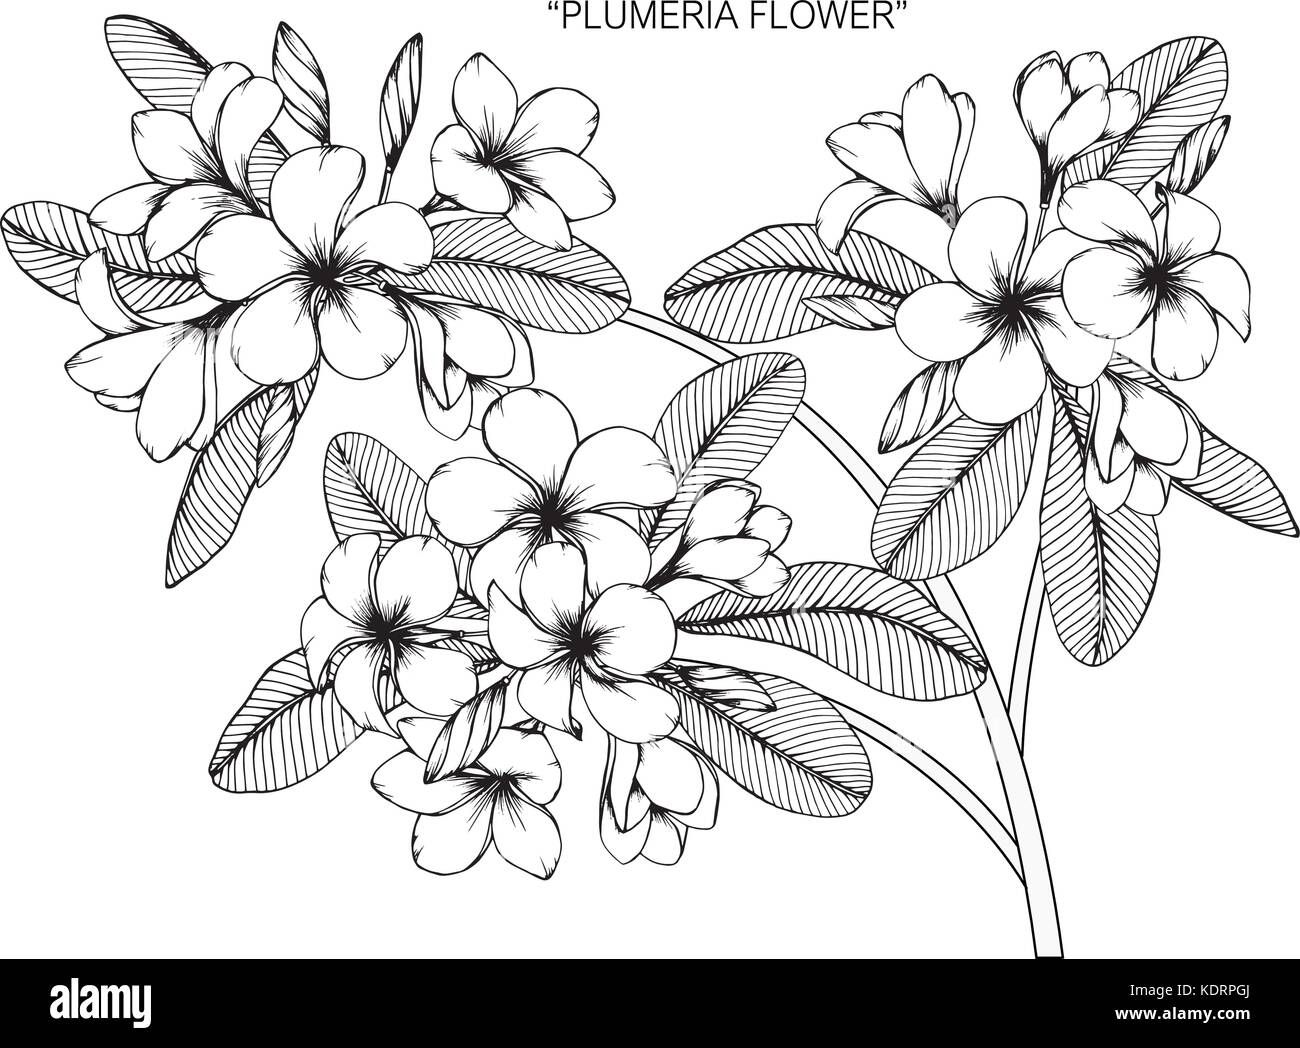 1f0cdf329 Plumeria flower drawing illustration. Black and white with line art ...